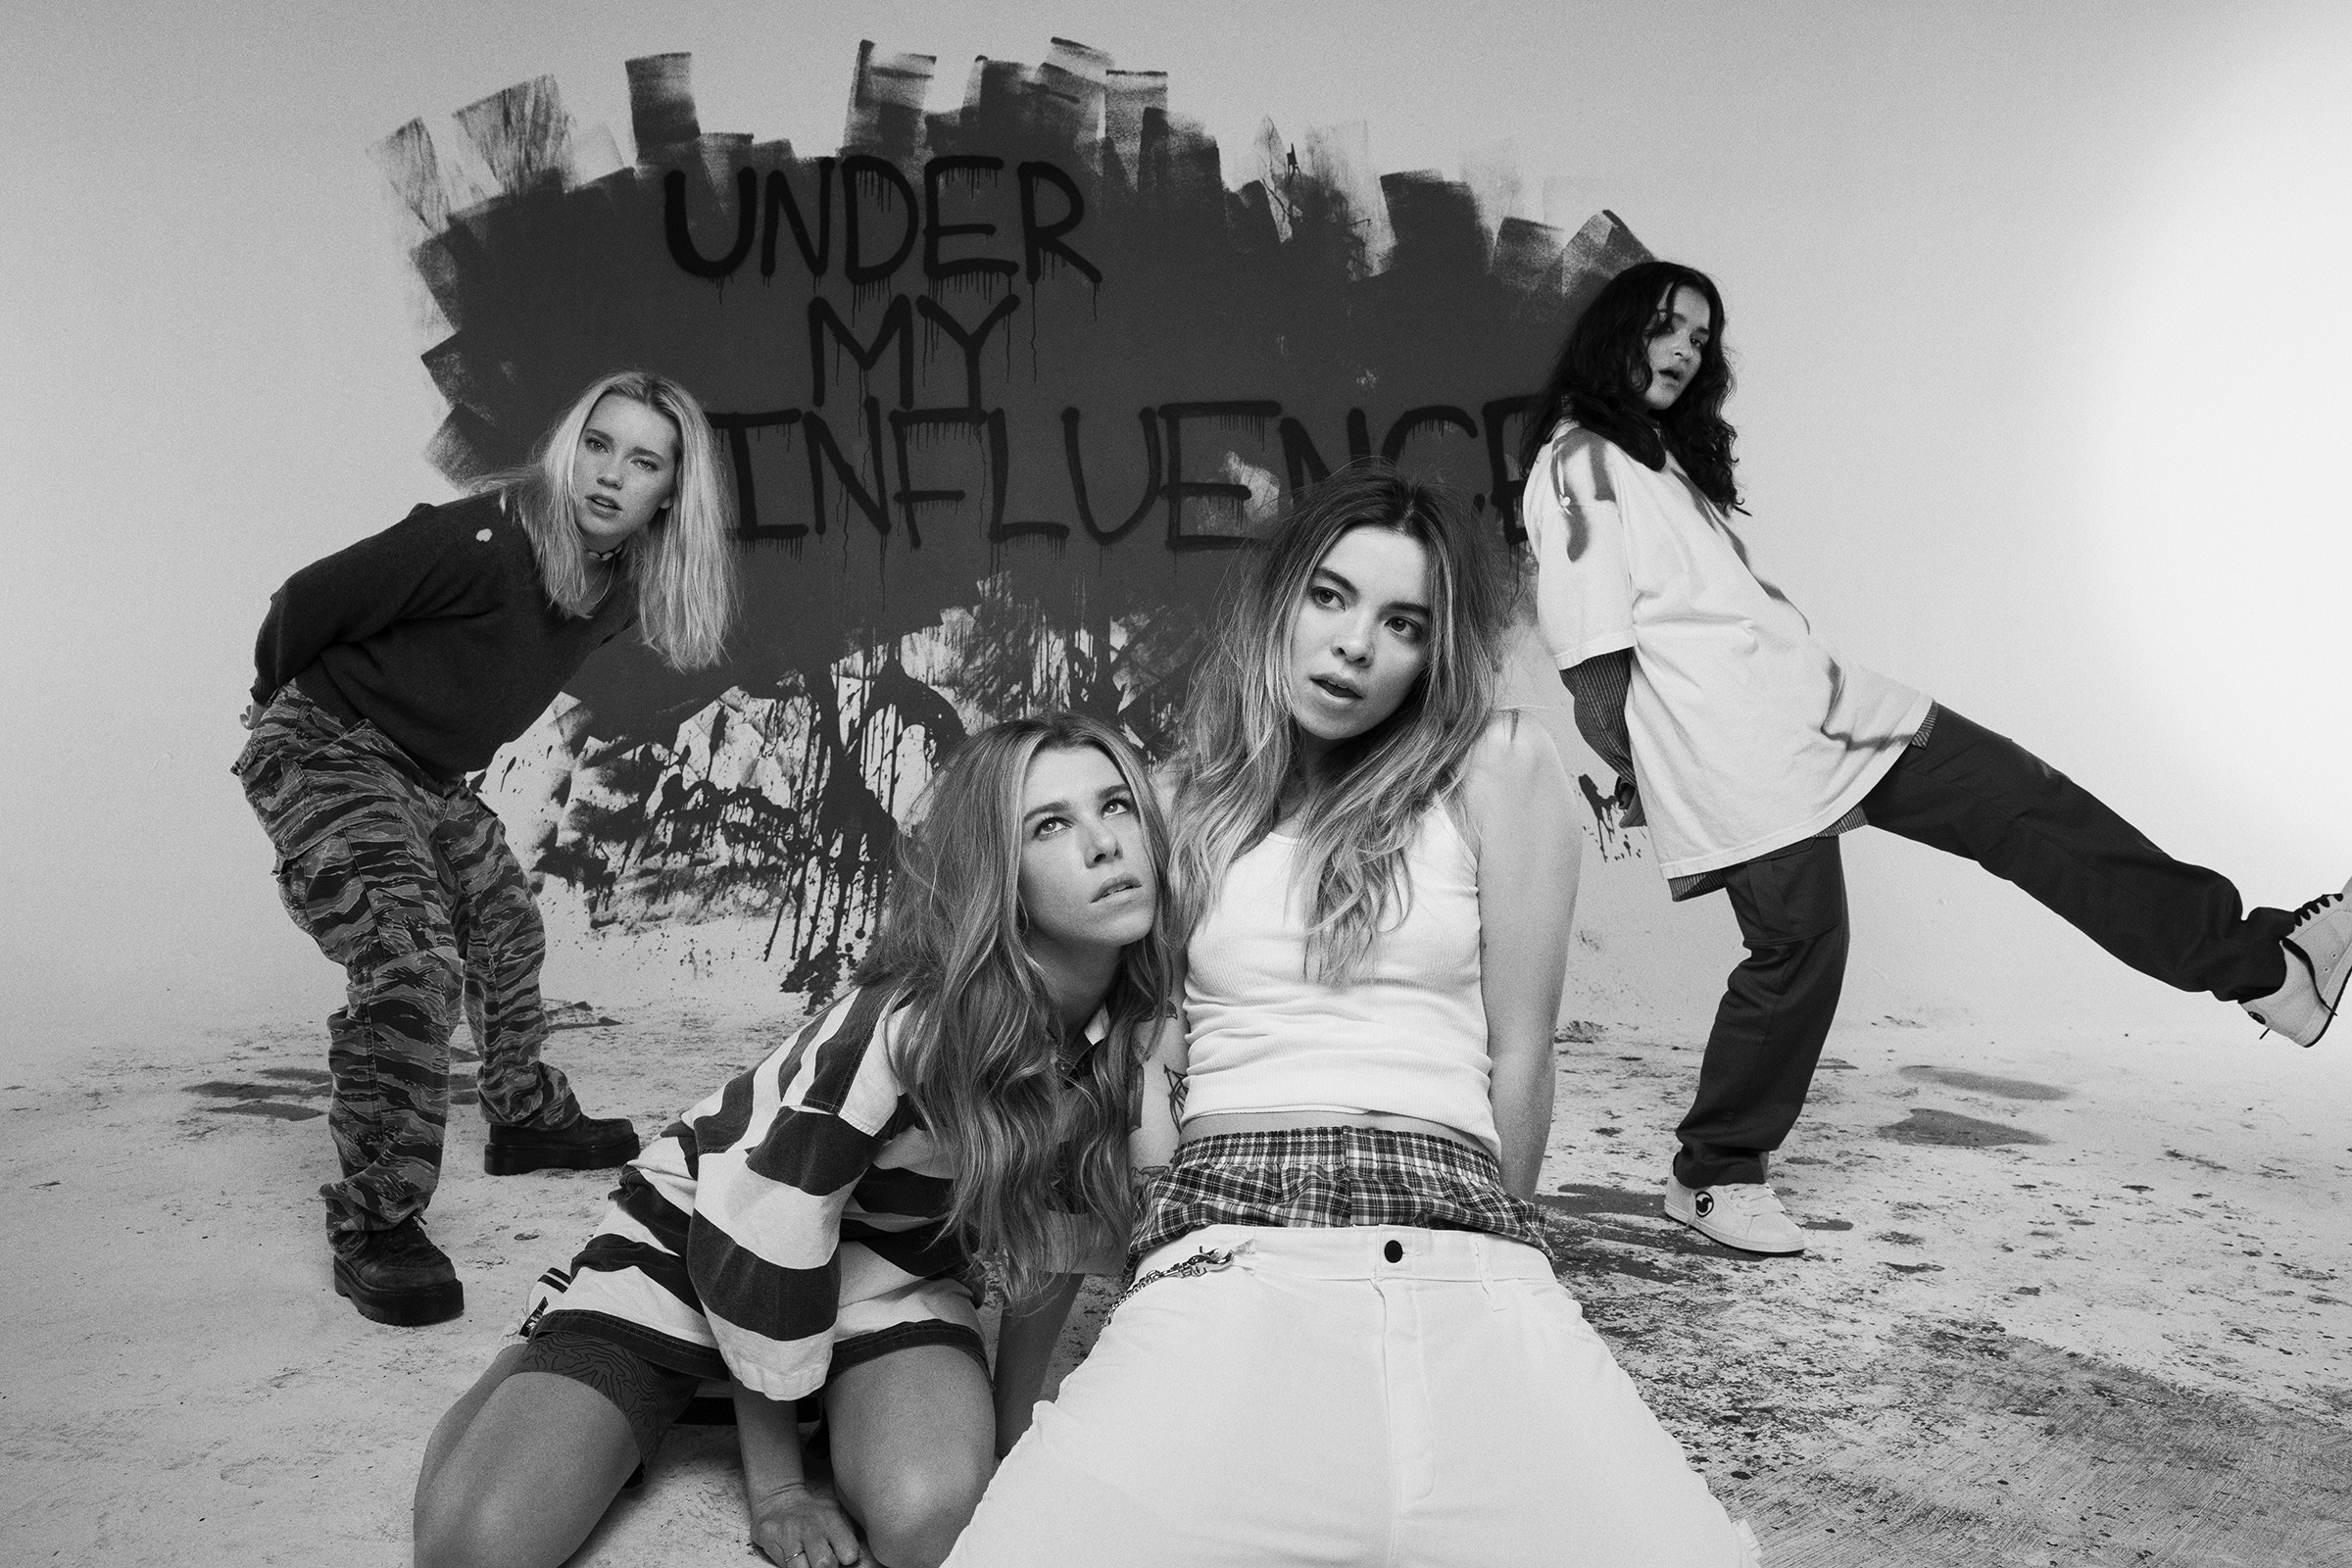 THE ACES announce sophomore album 'Under My Influence' - out 12th June